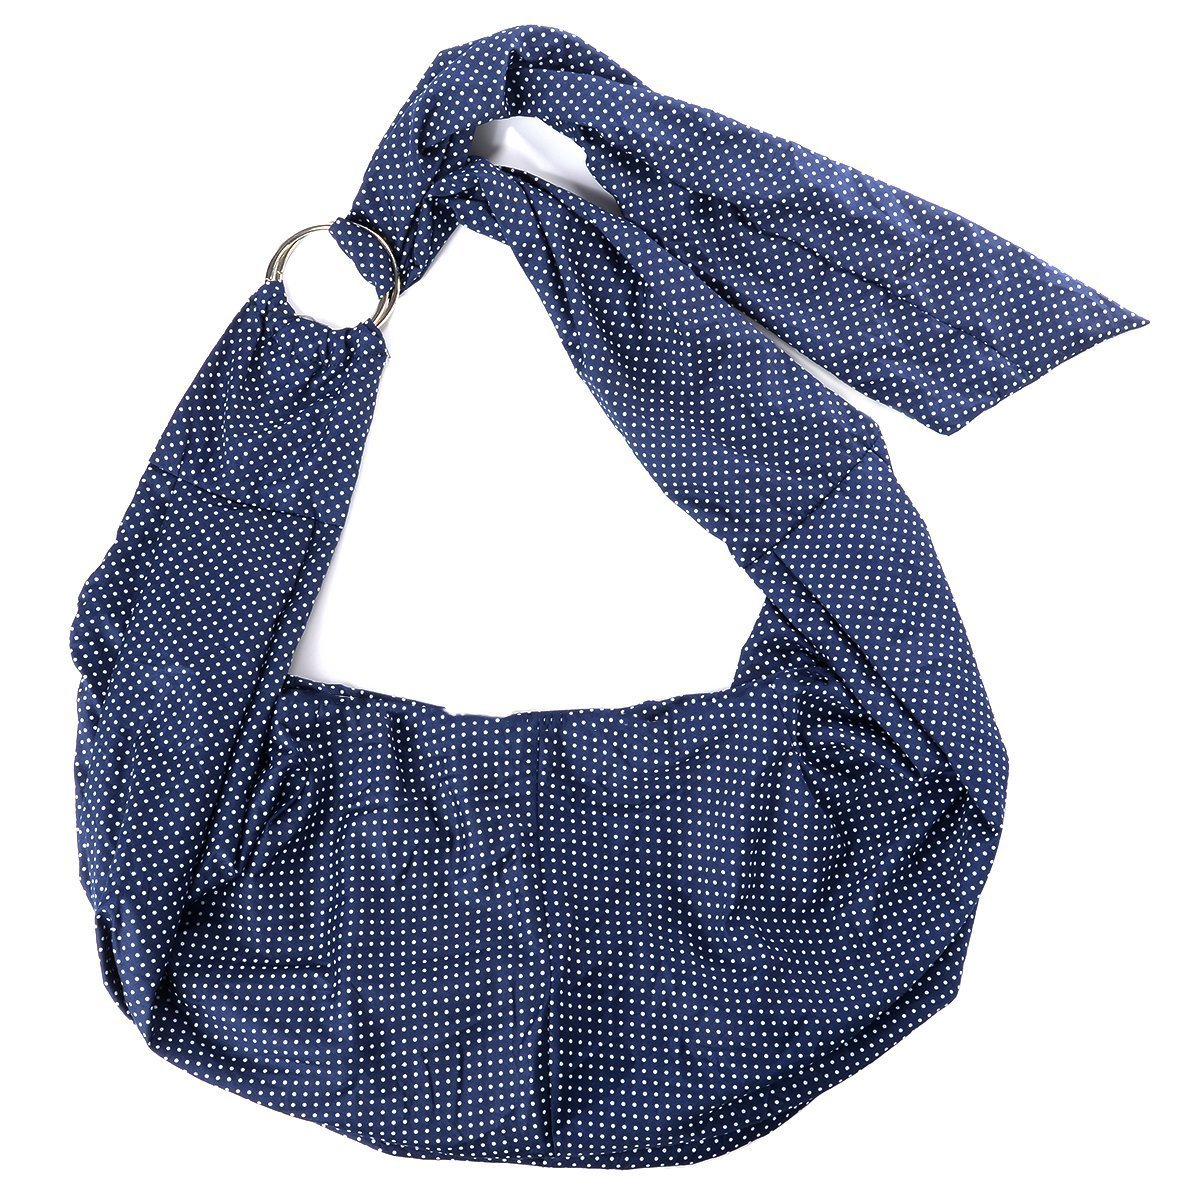 YueYueZou Cat Puppy Small Dogs Pet Sling Carrier Bag Cute Dots for Girls by YueYueZou® (Image #1)